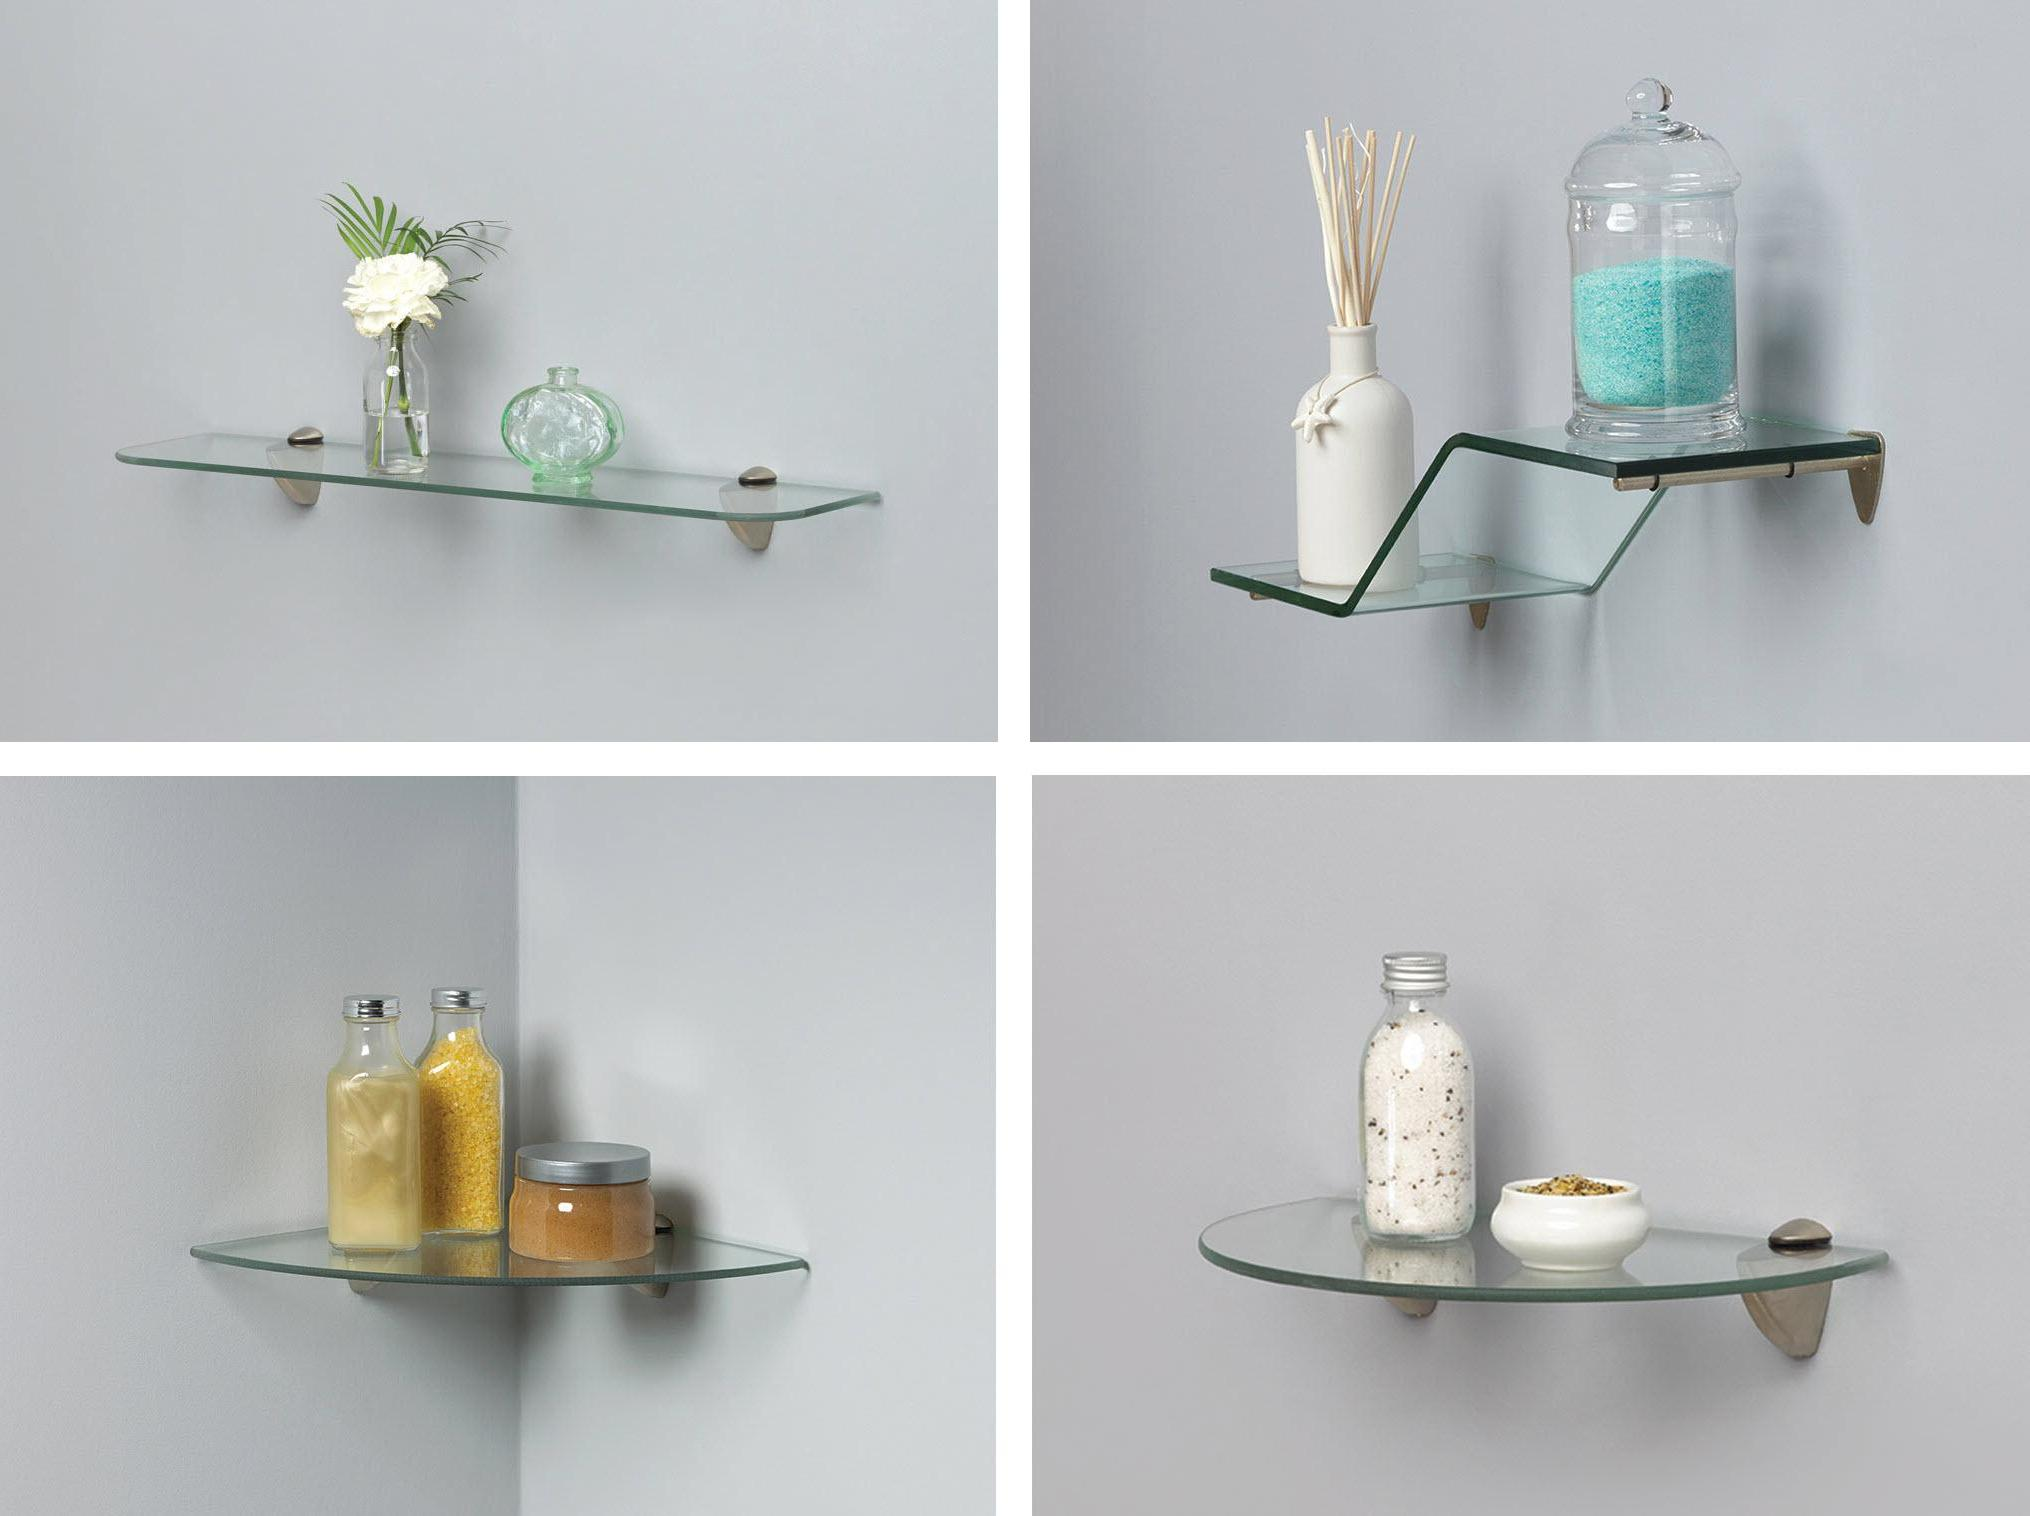 Stylish Glass Shelves Design